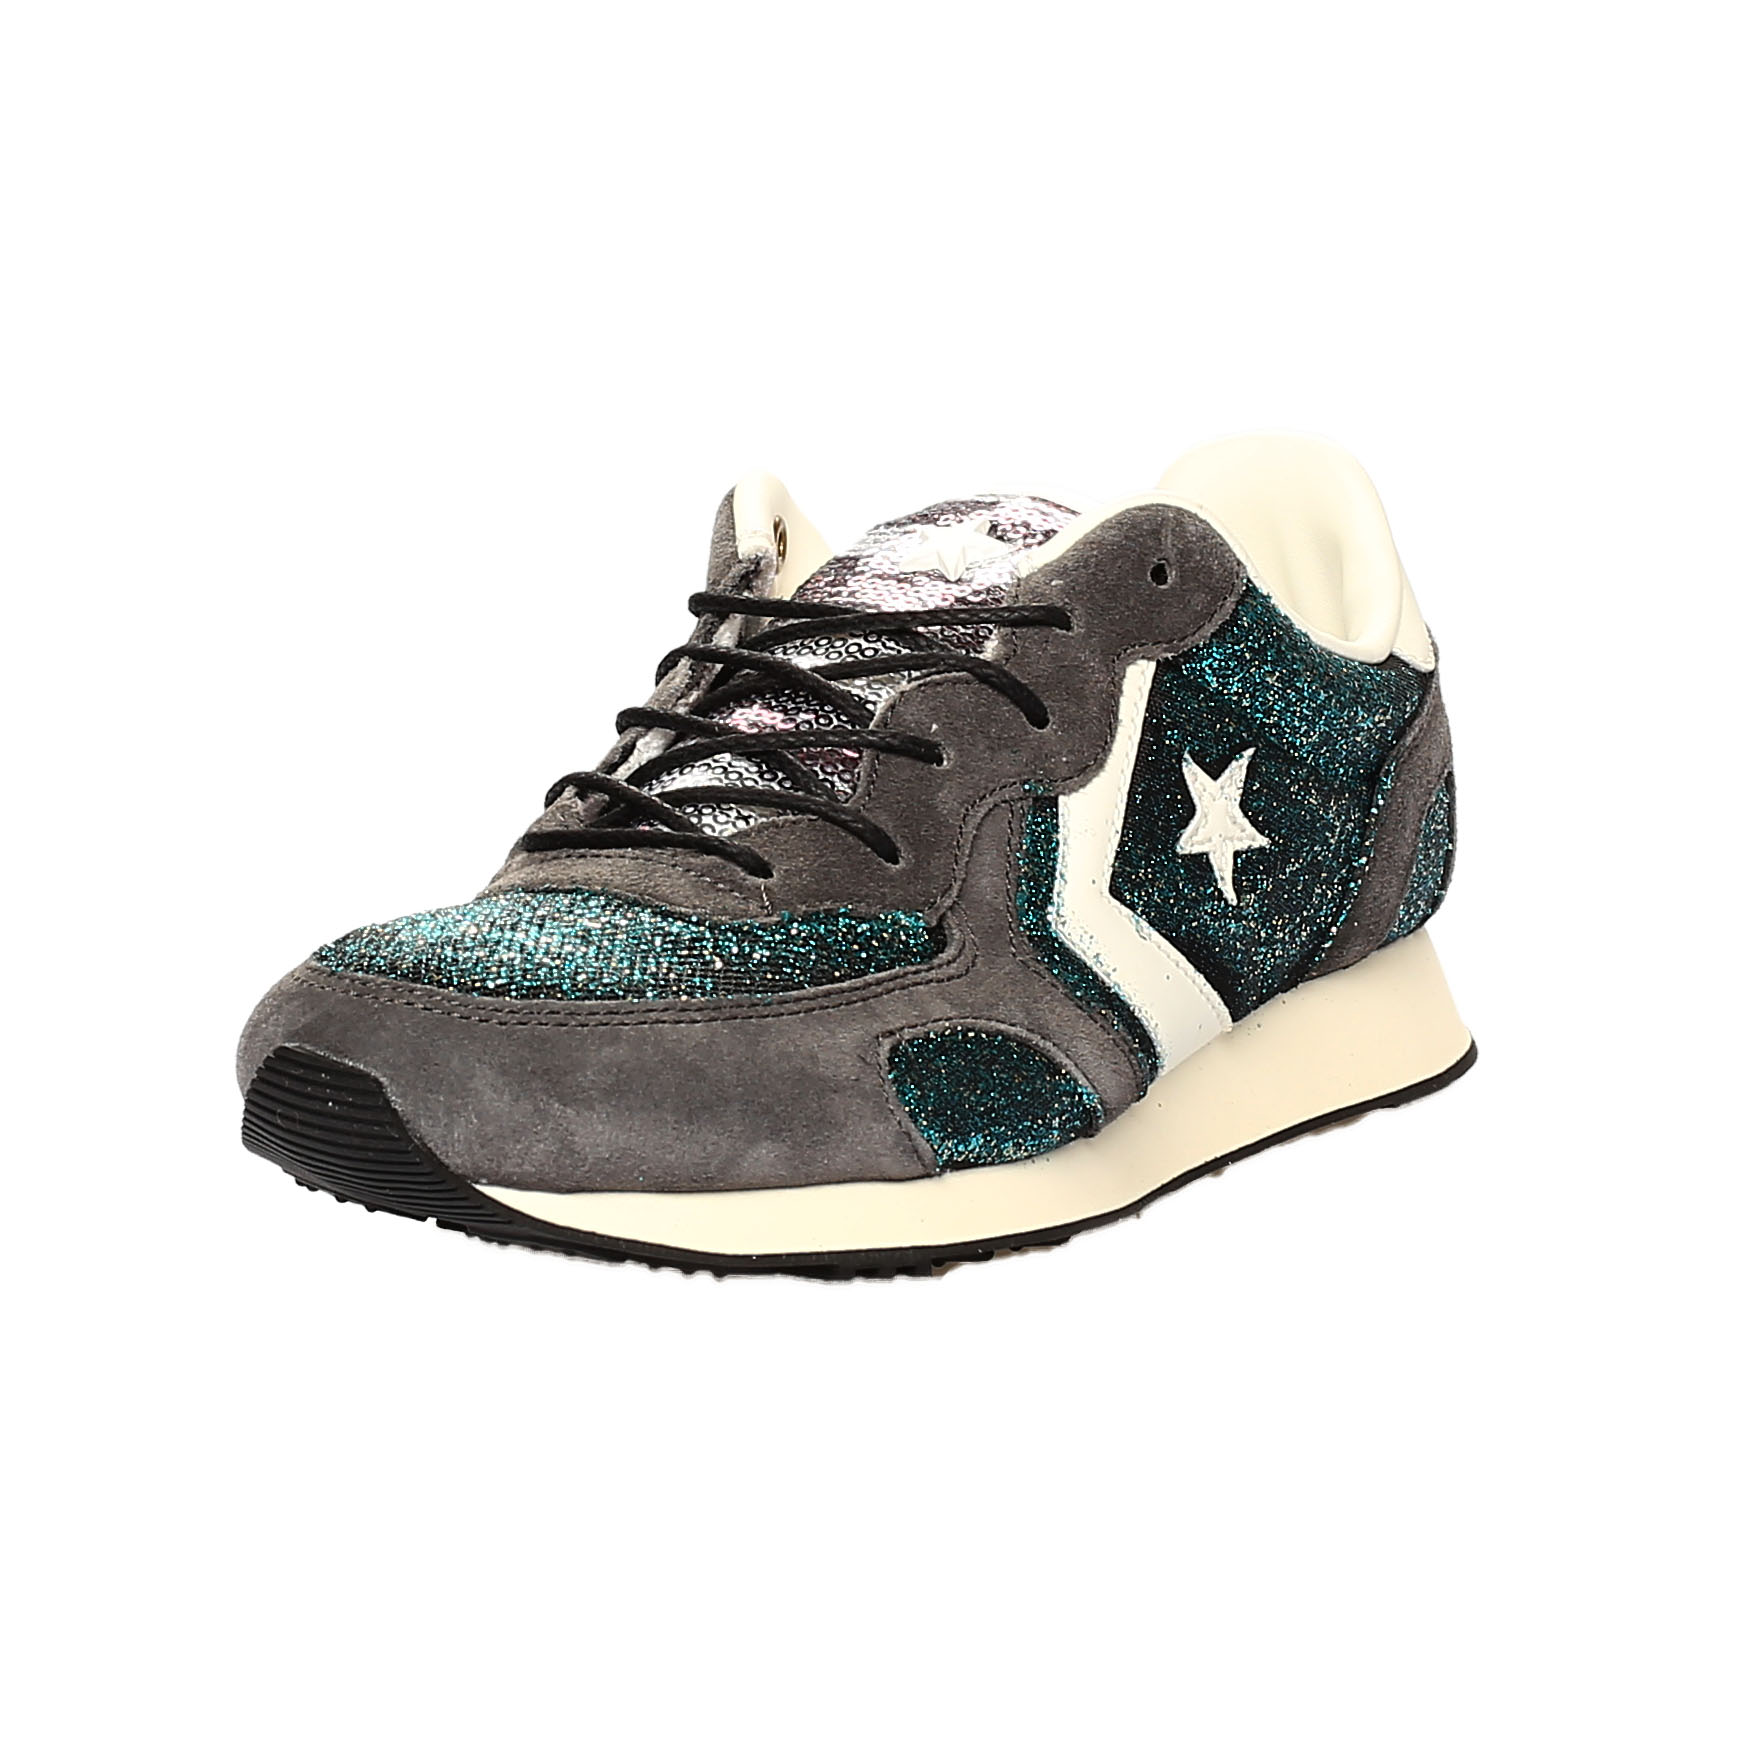 Converse Auckland Racer Limited Edition